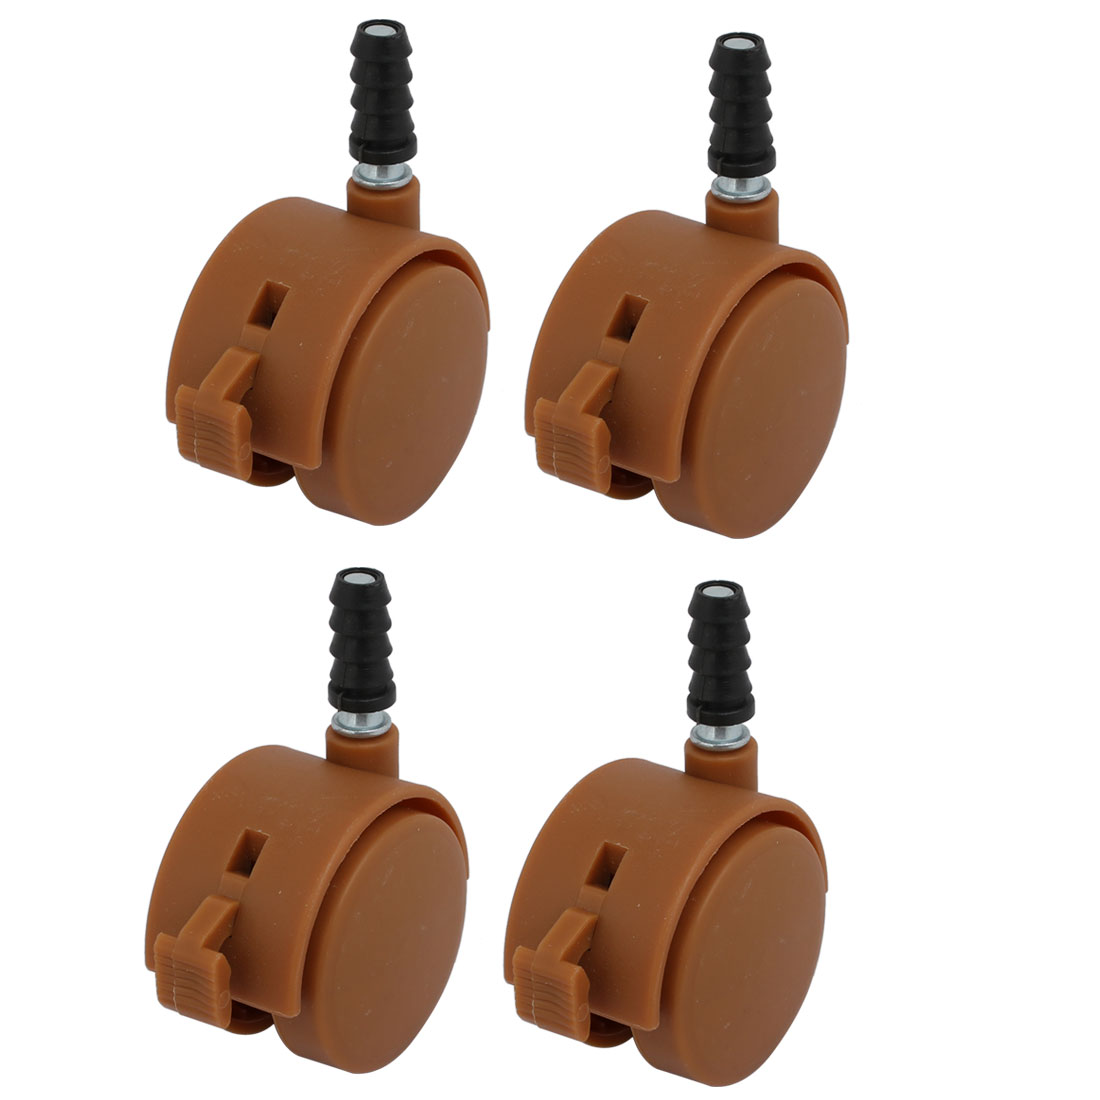 4pcs 2-inch Dia 7mm Stem Swivel Brake Caster Wheel Brown for Crib